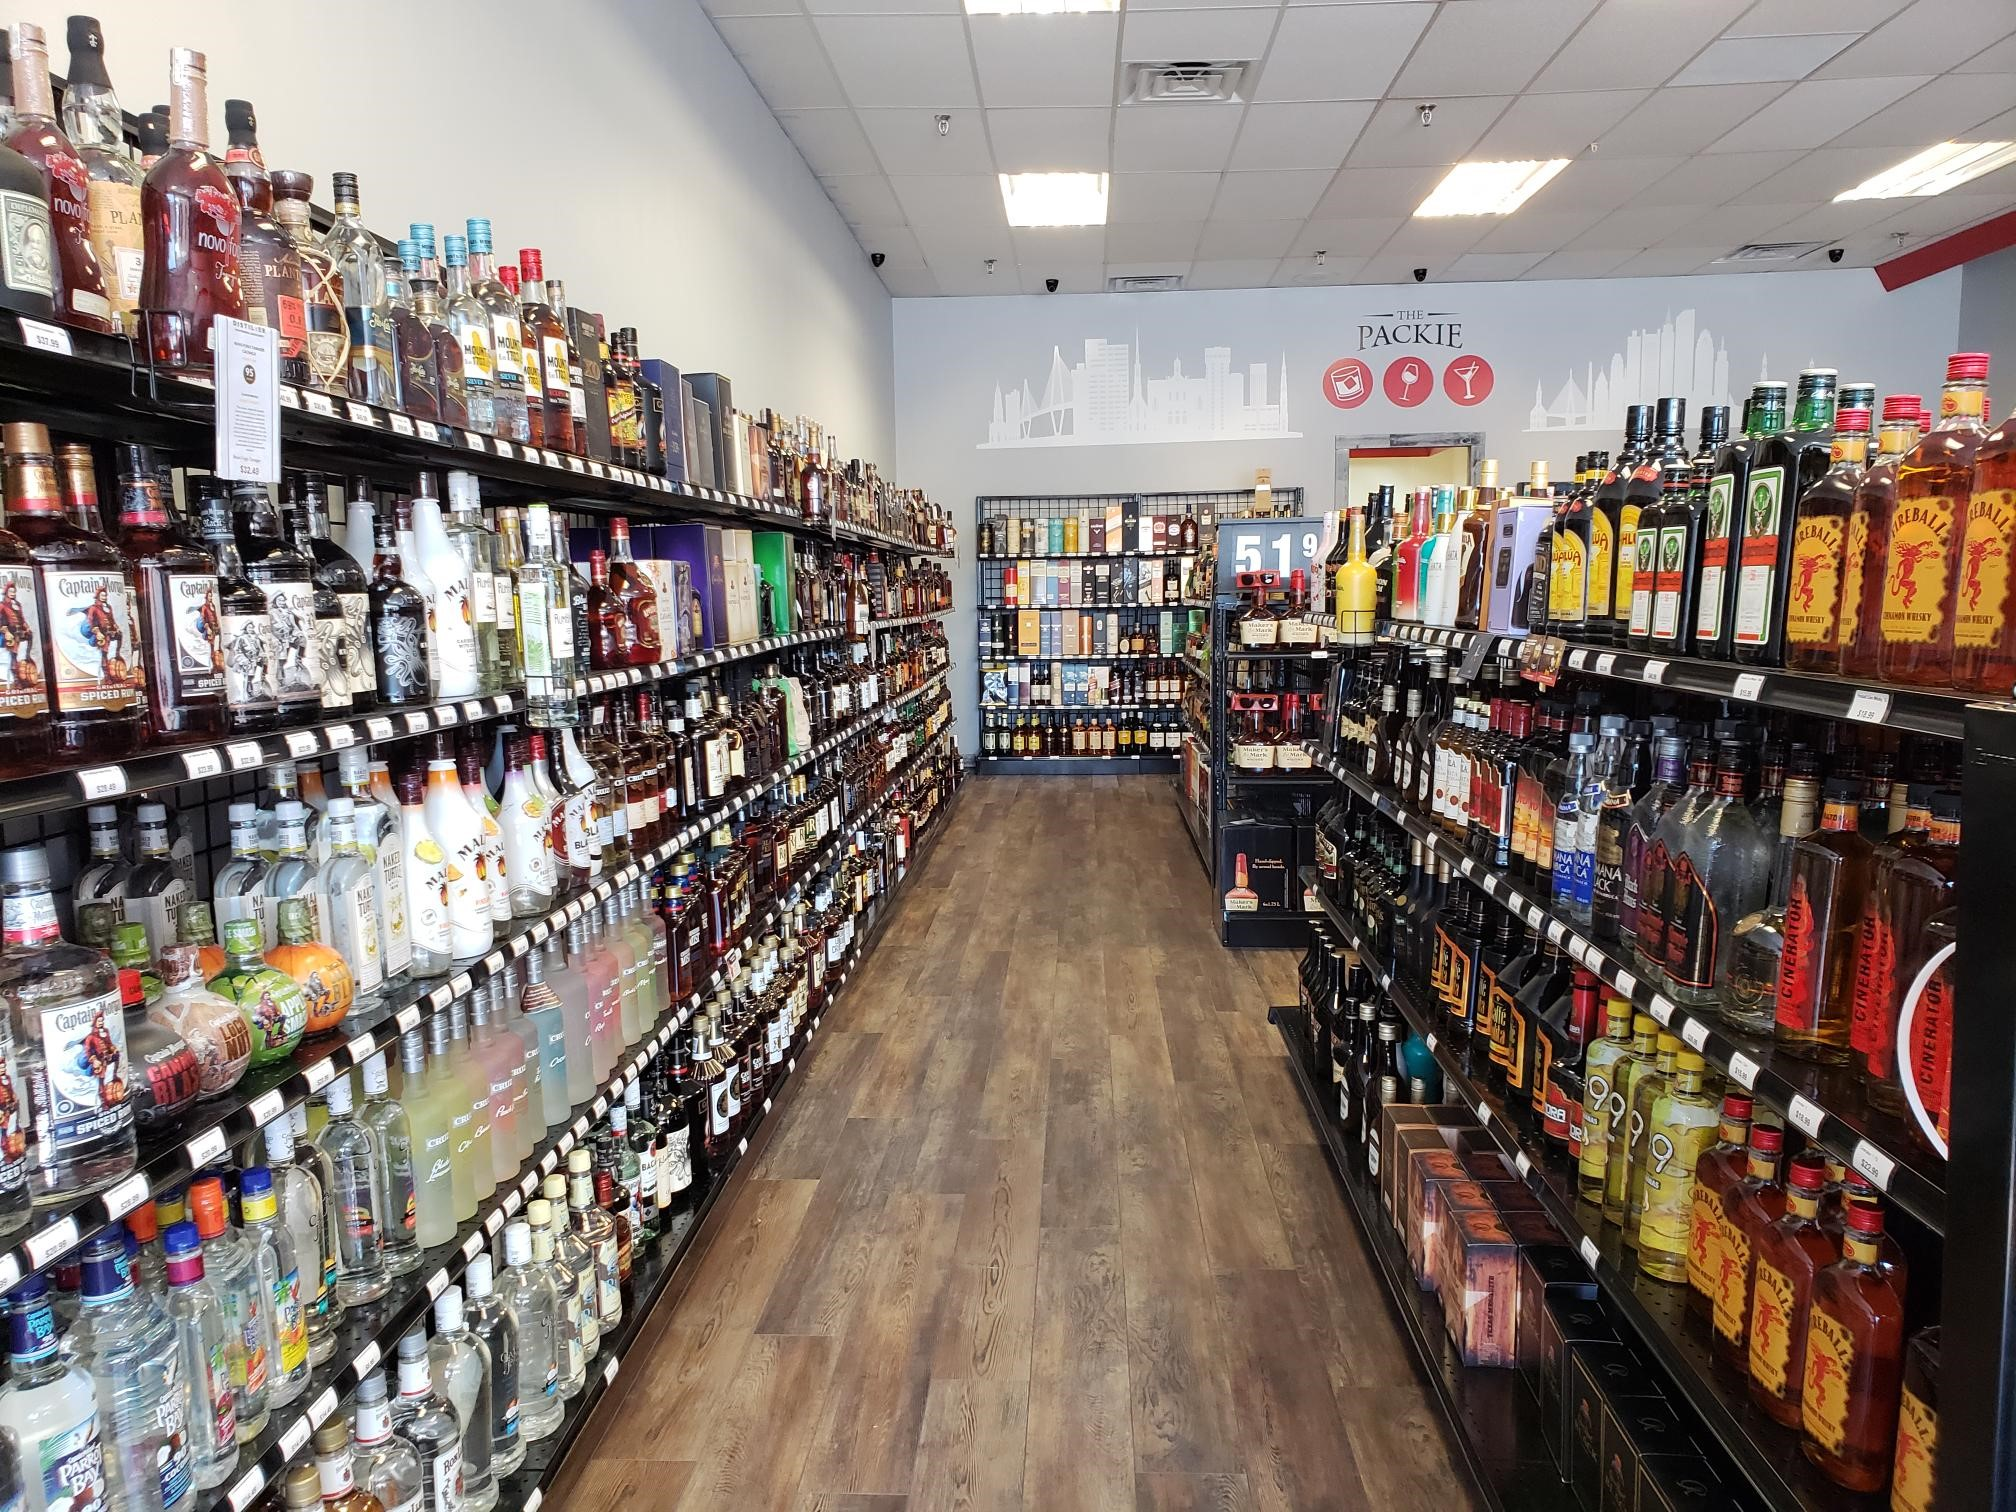 The Packie Wine and Spirits image 3